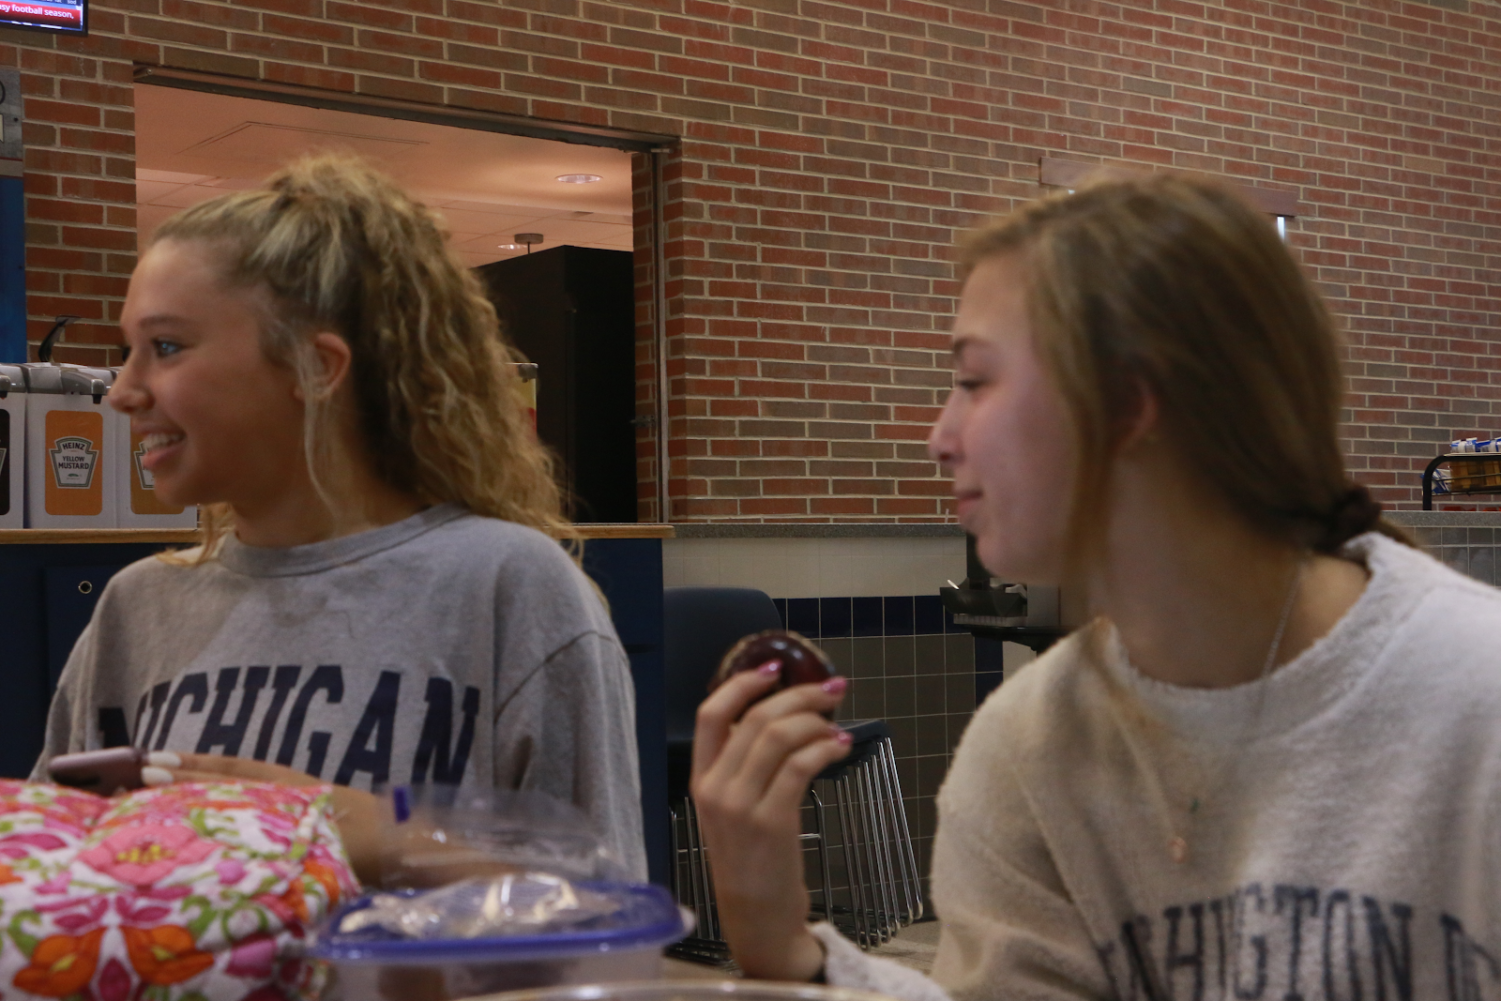 """Juniors and dancers Lexi Dungey (left) and Maddy Massa (right) have lunch together as team members. The girls try to balance school, dance and socialization. """"I use the time I have to get things done and bond with my teammates, who quickly become close friends,"""" Massa said."""